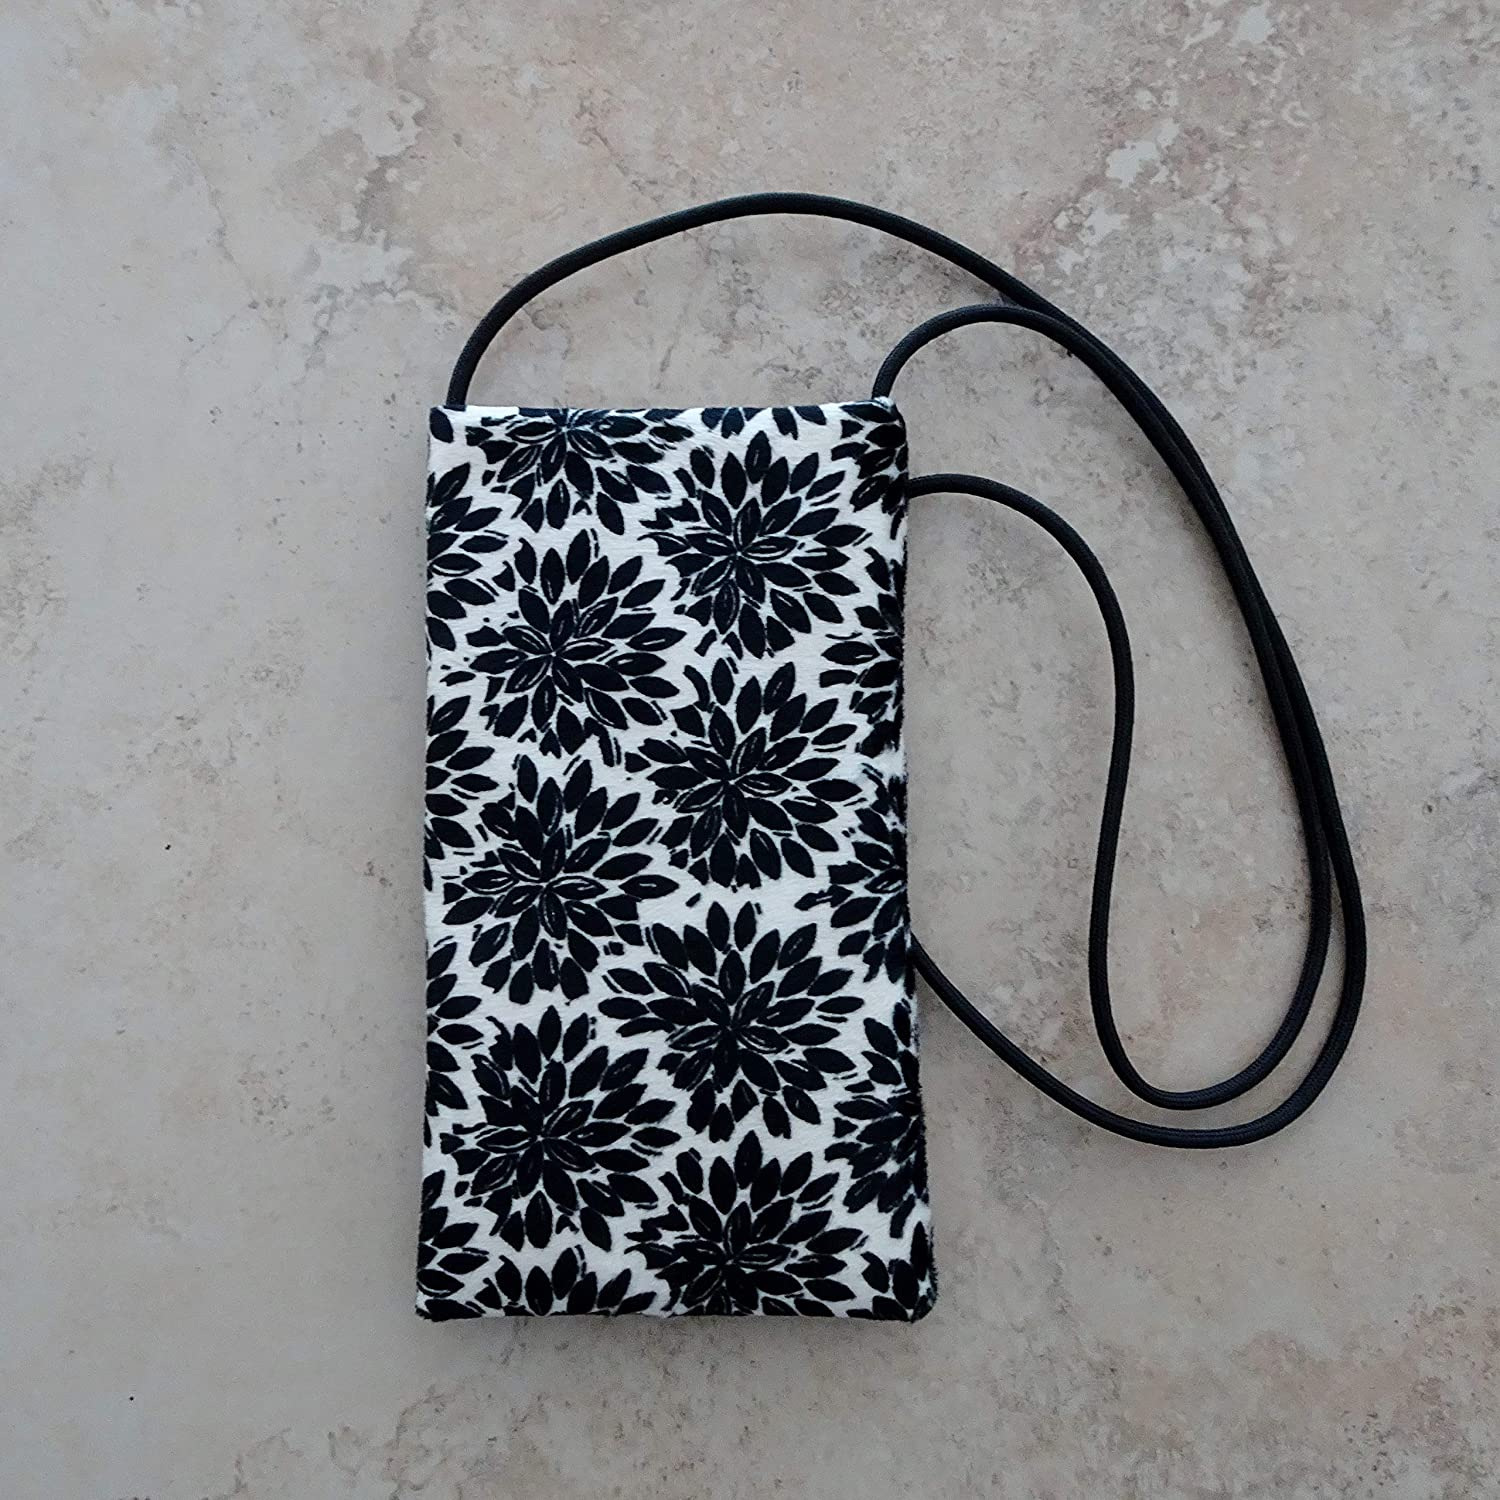 Cell Phone Pouch Black White Strapped Small Cross Manufacturer Austin Mall regenerated product Purse body